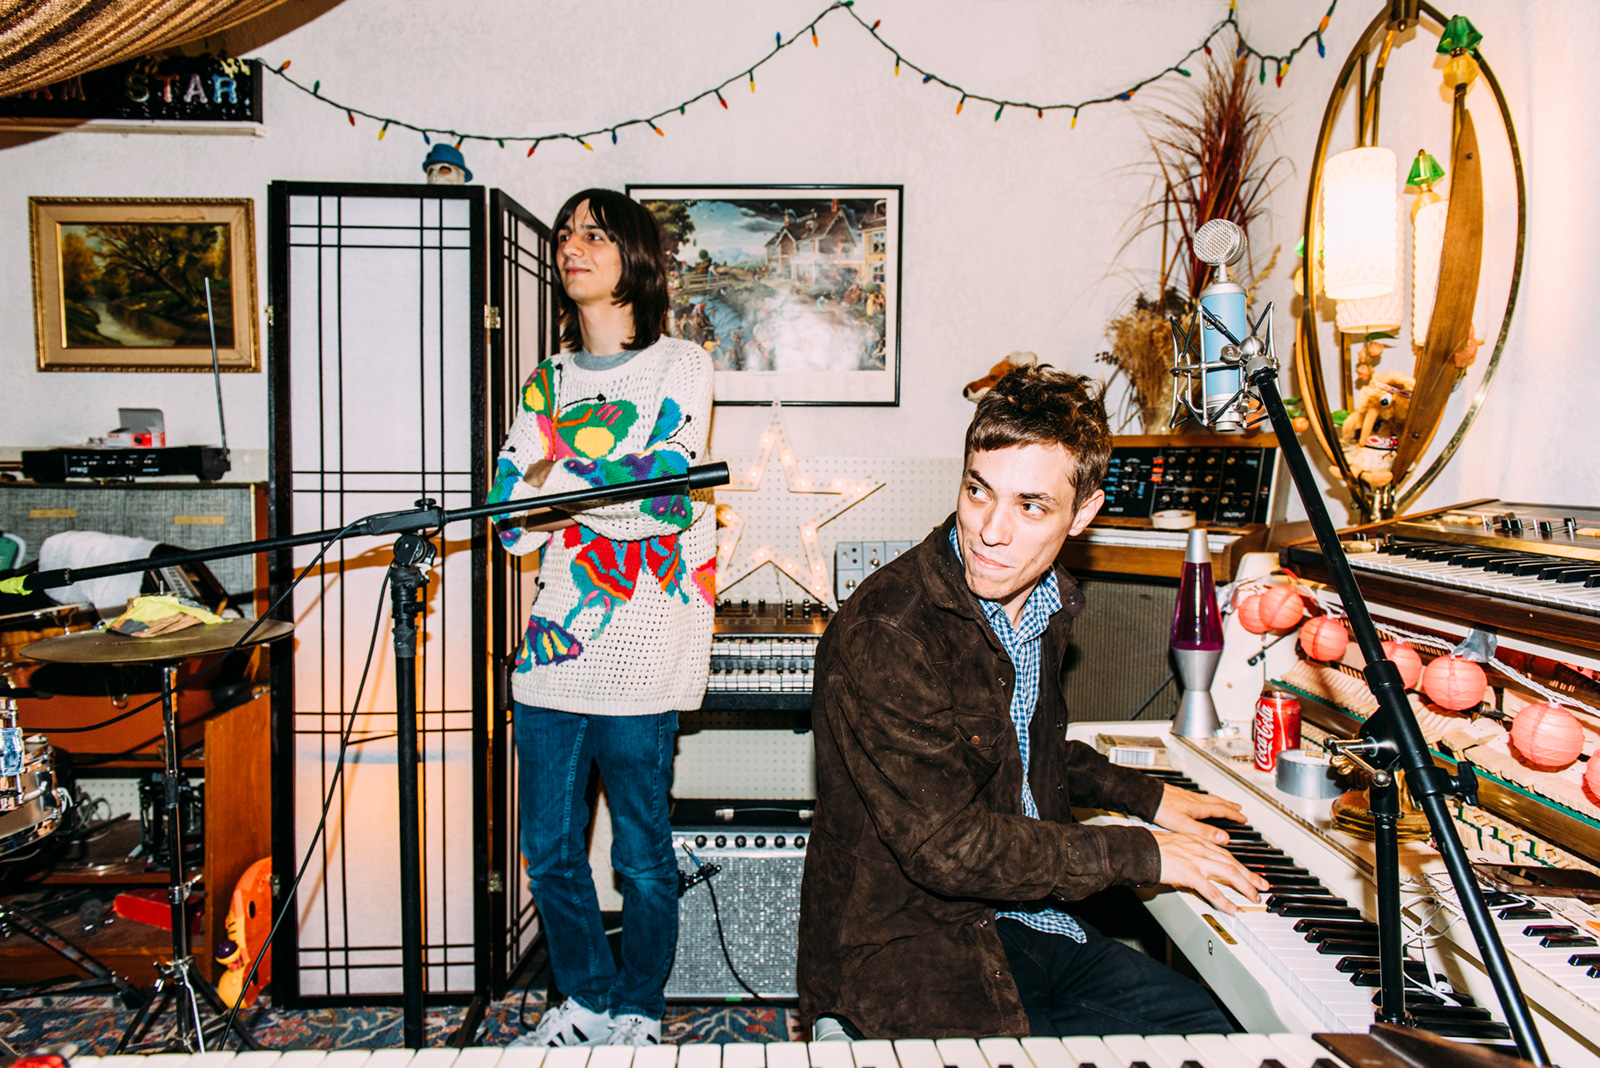 "Foxygen's Jonathan Rado (below) has a 'basic' tape-based studio called Dreamstar: ""I have a Tascam MSR-16 16-track, an old Tascam 288 eight-track, and I recently got a Tascam 24-track. The Lemon Twigs record was done on the 16-track, which is a half-inch machine. I also have a 32-channel Yamaha desk, and a 16-channel Tascam M2516 mixer that we used for monitoring."""